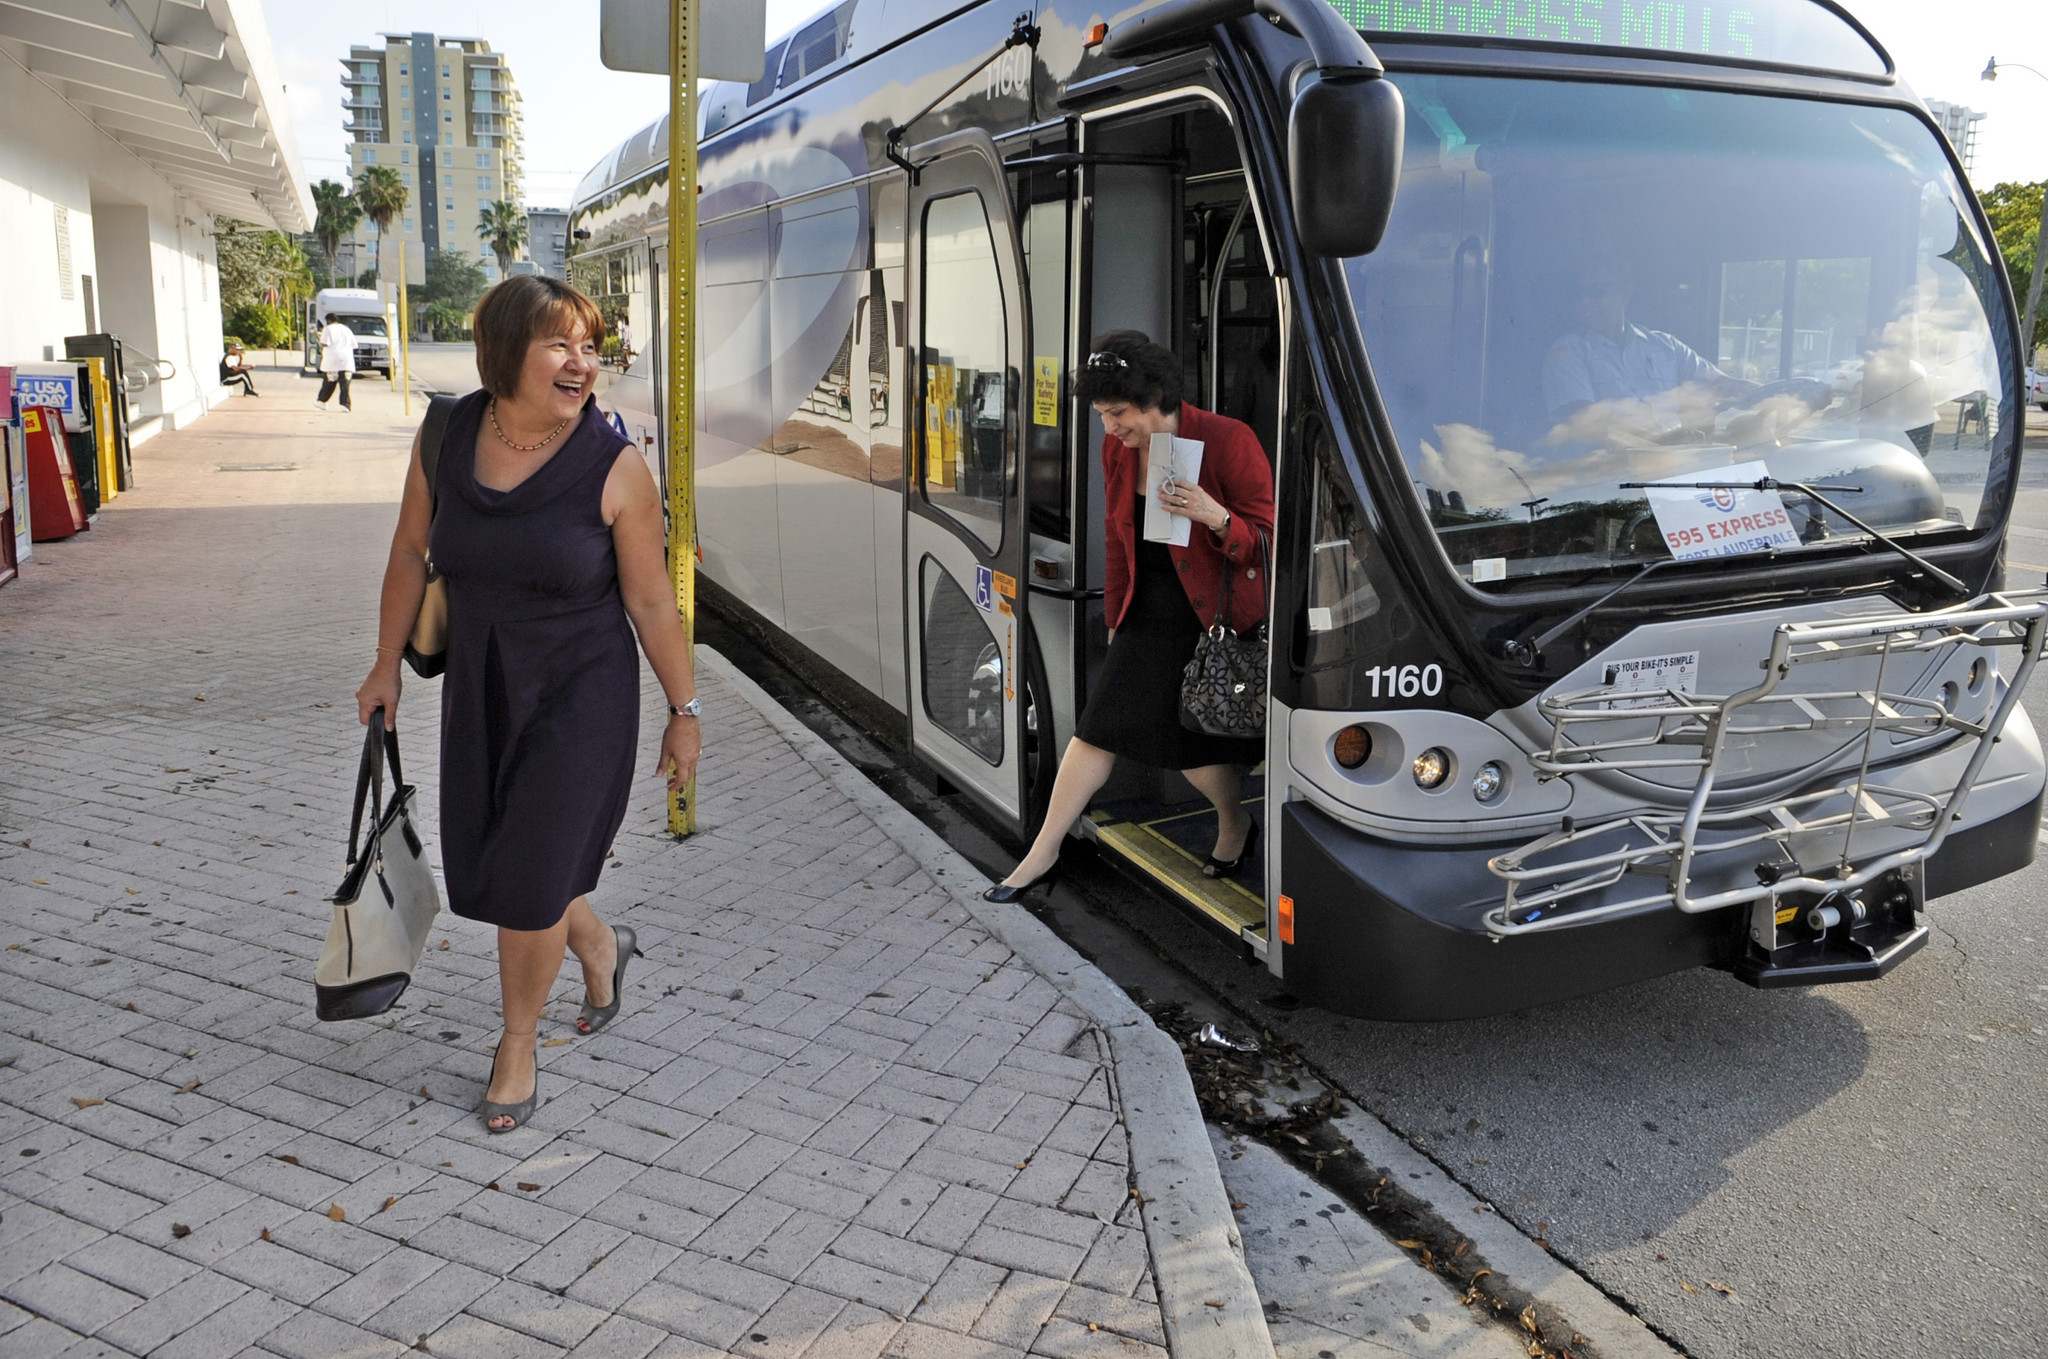 Broward County Transit - I-595: Broward County Transit moving premium buses to Miami routes. - Nov 10, 2014 ... Low ridership forces Broward County Transit to pull premium buses from Fort   Lauderdale I-595 express routes to Miami routes.